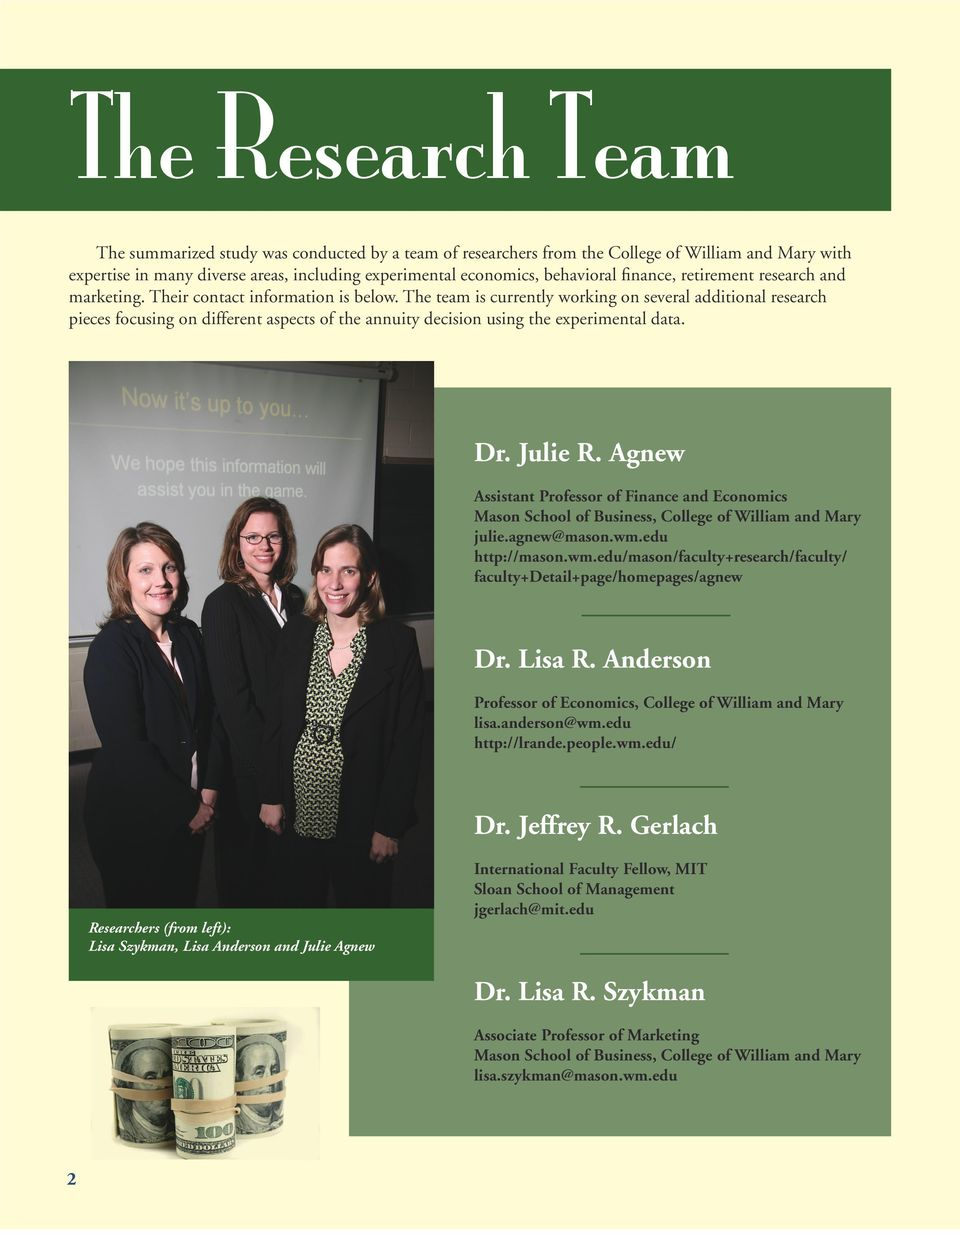 The team is currently working on several additional research pieces focusing on different aspects of the annuity decision using the experimental data. Dr. Julie R.